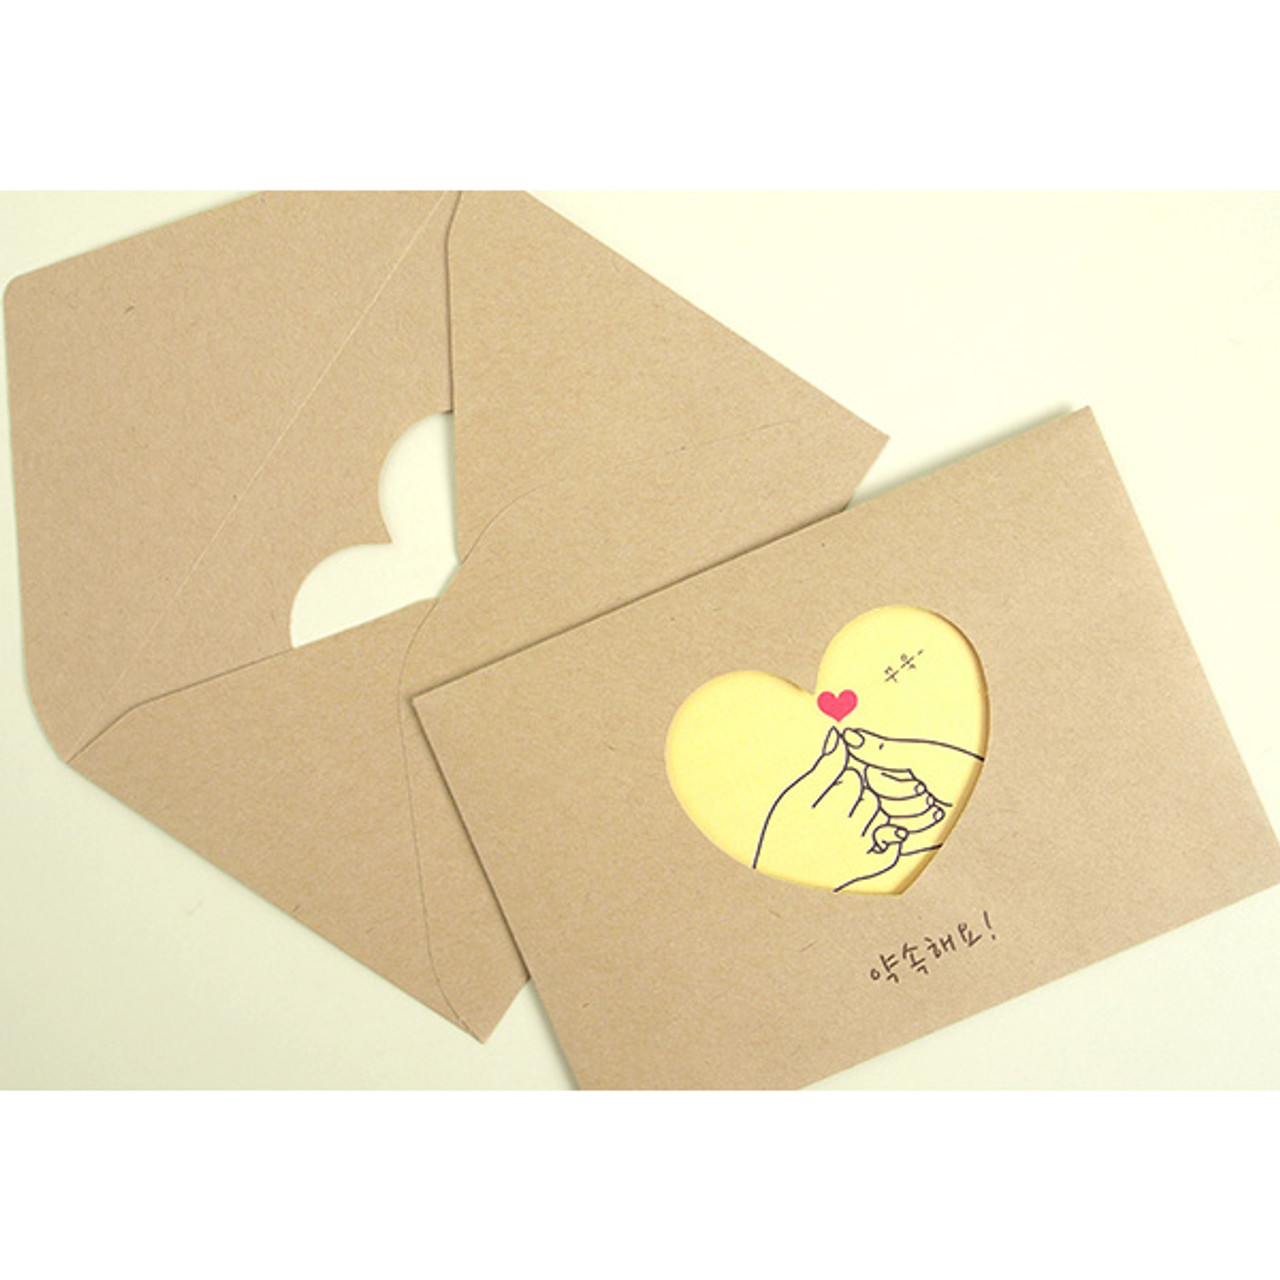 2young love heart letter paper and envelope set